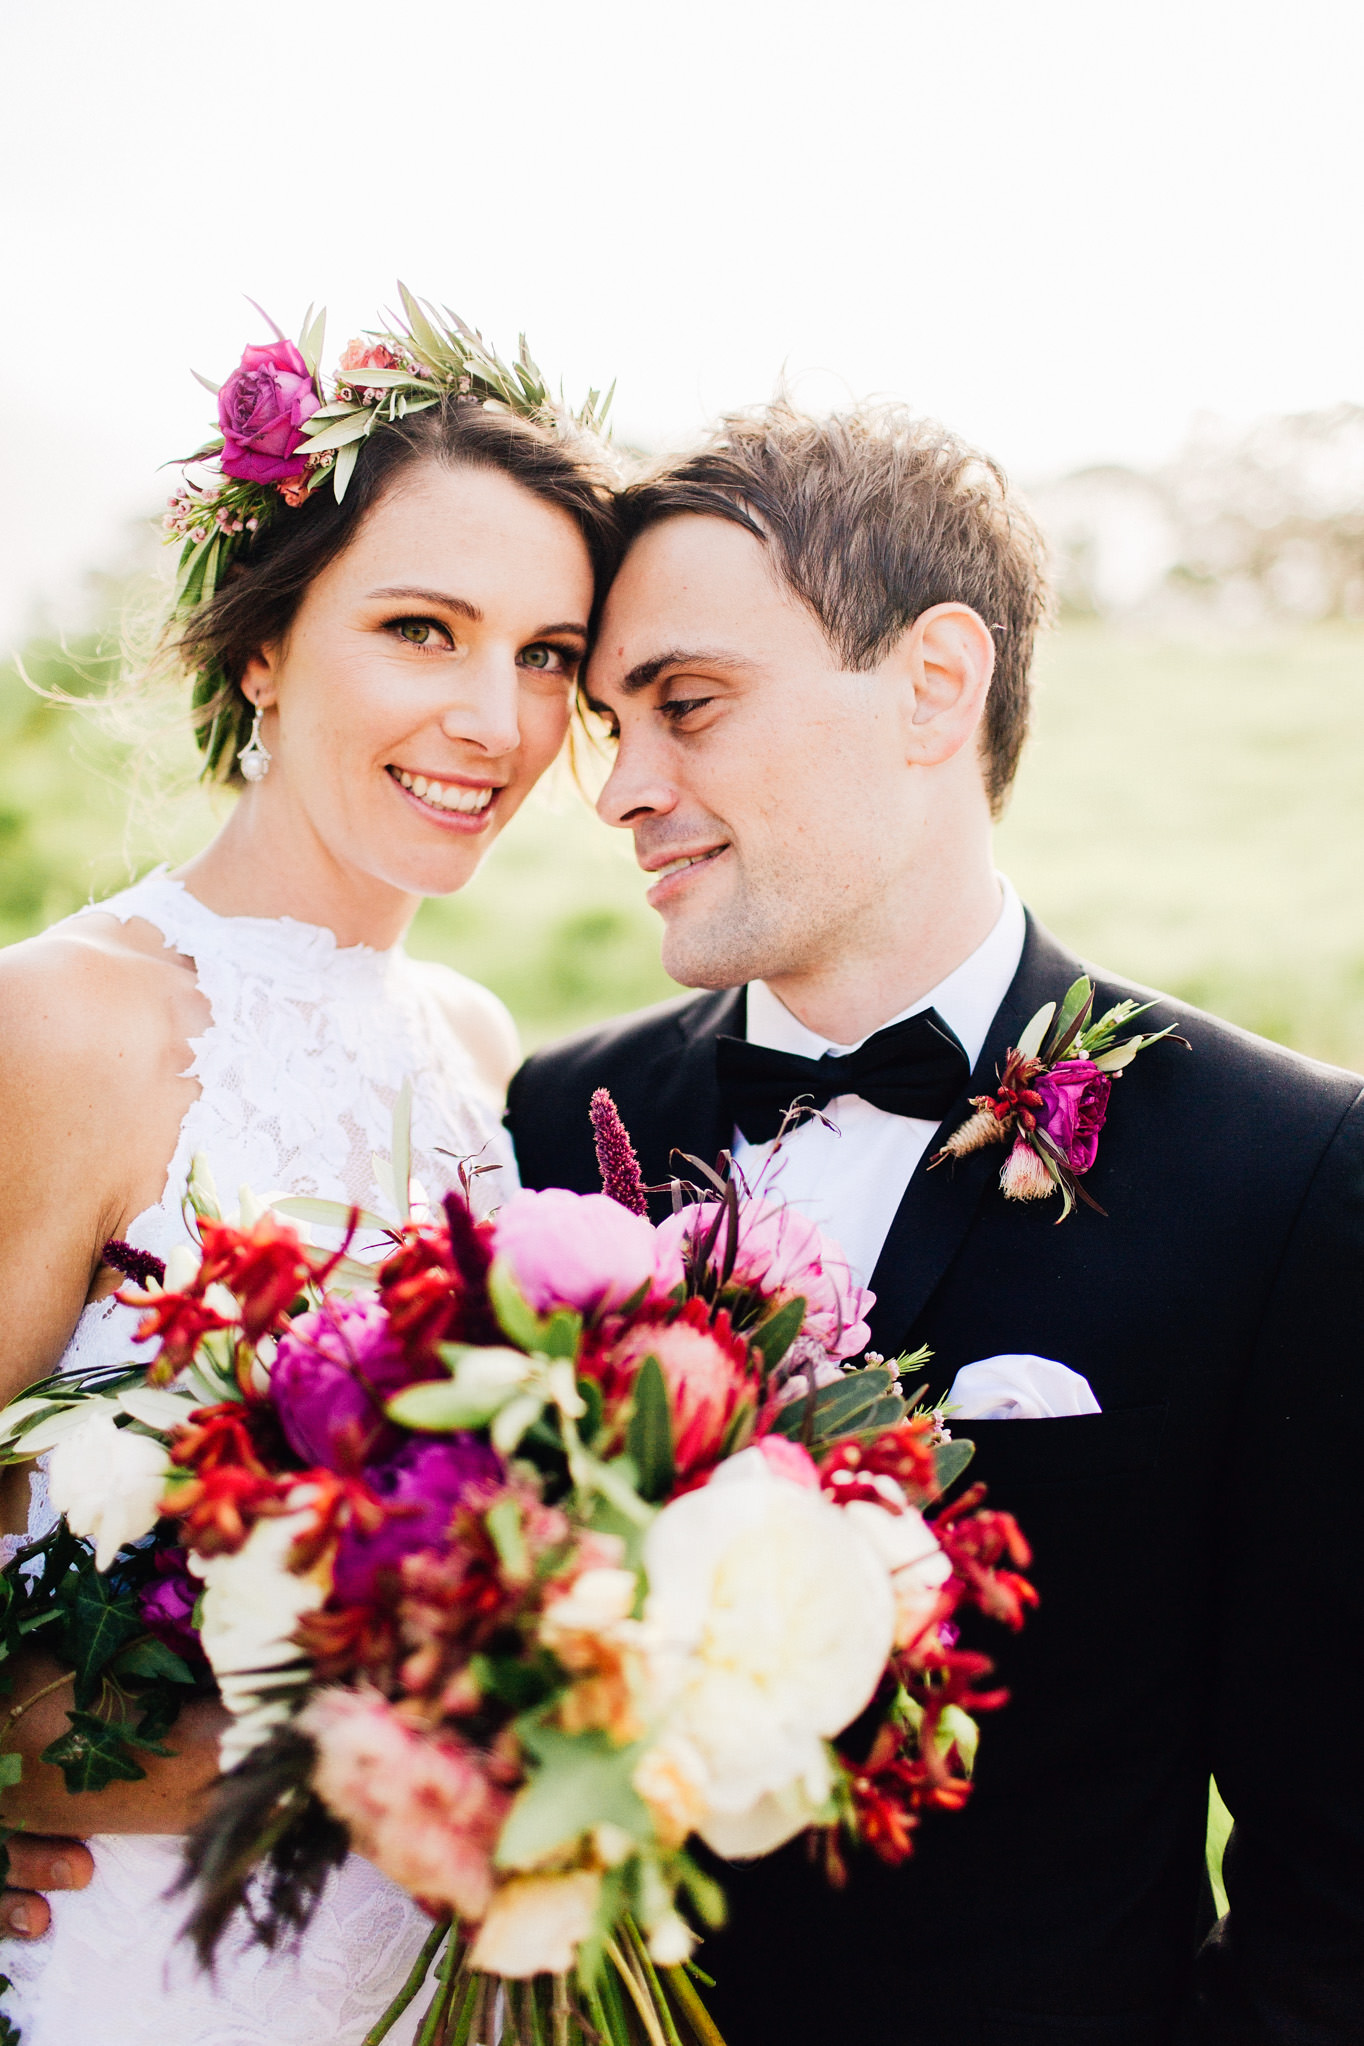 TocalHomestead_WeddingPhotography_LaurenAnnePhotography-1109.jpg